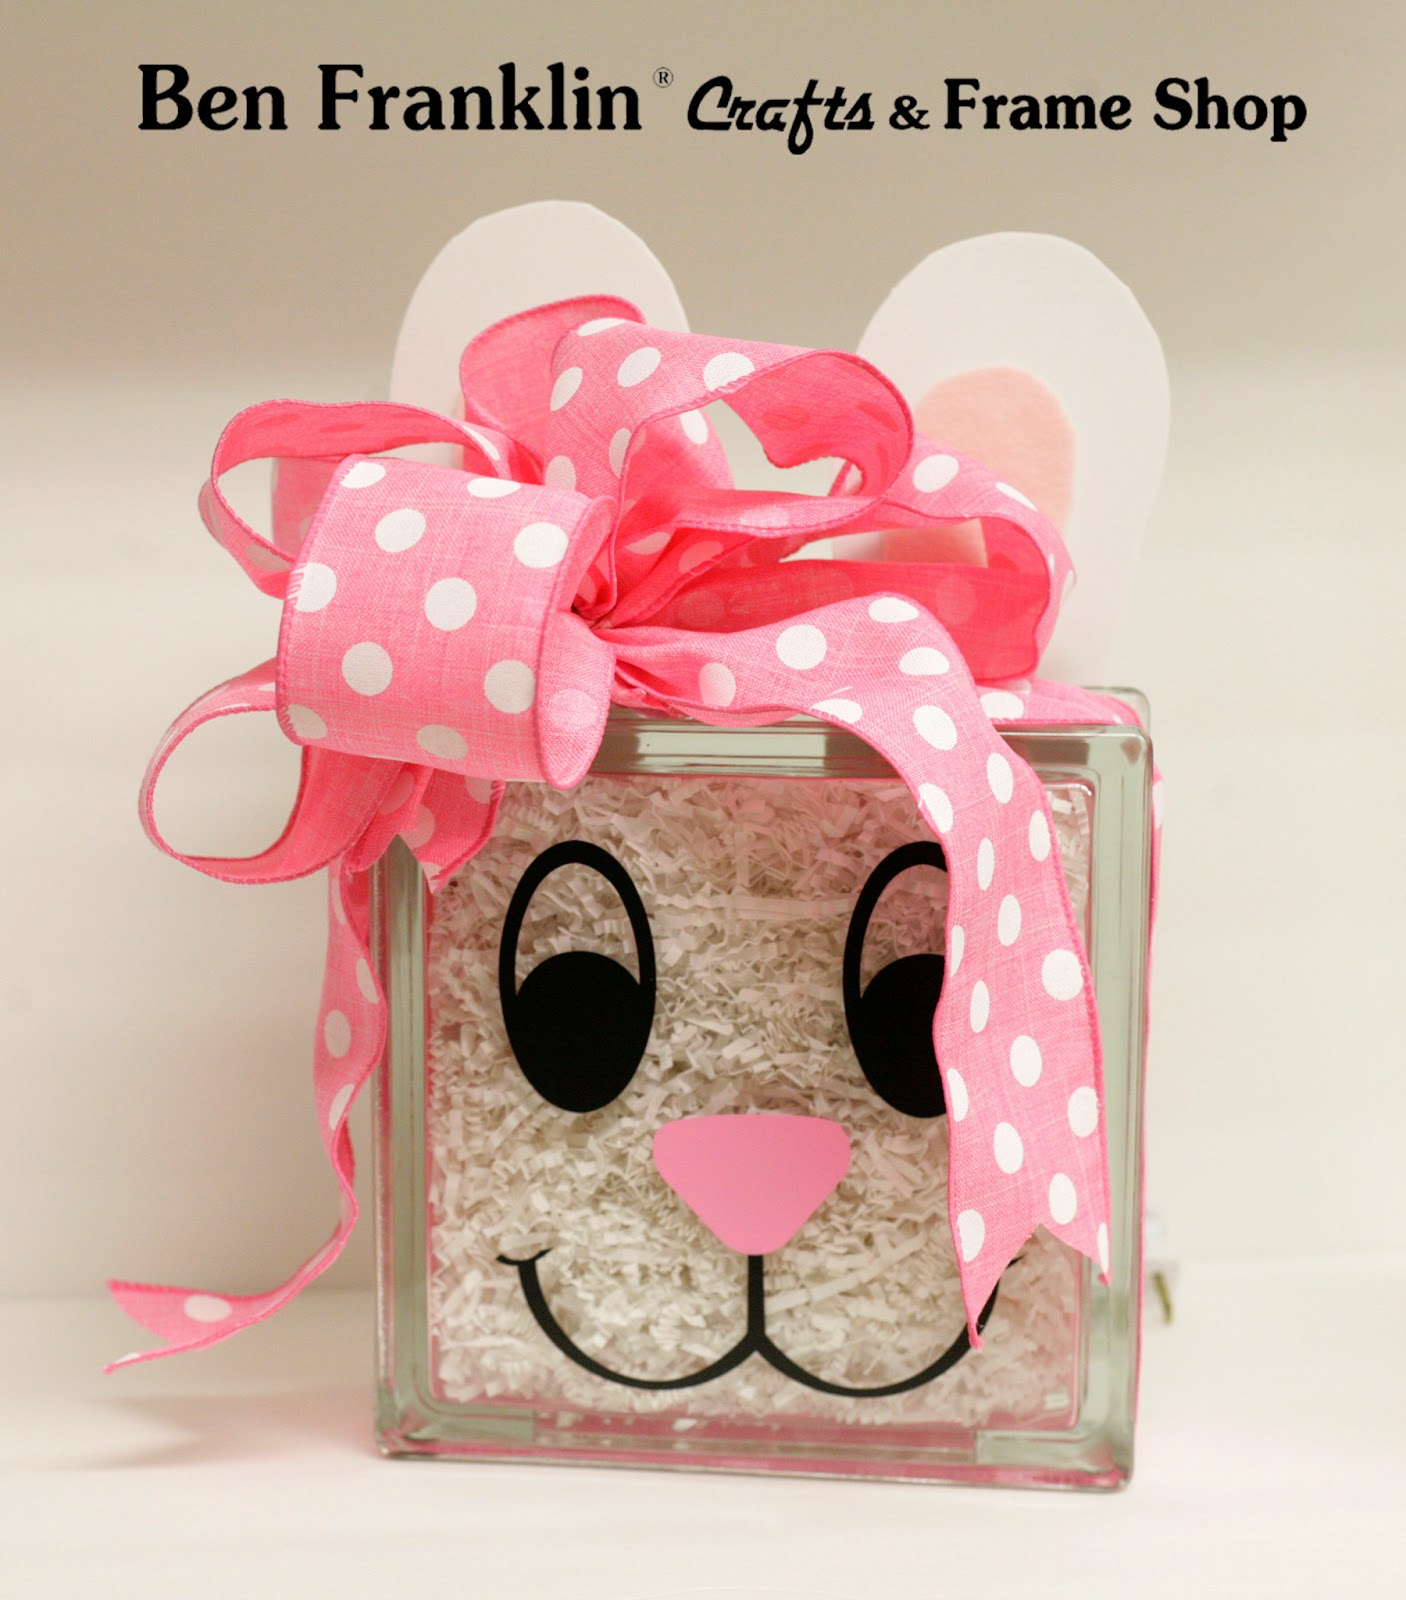 Ben franklin crafts and frame shop glass block bunny for Glass block crafts pictures